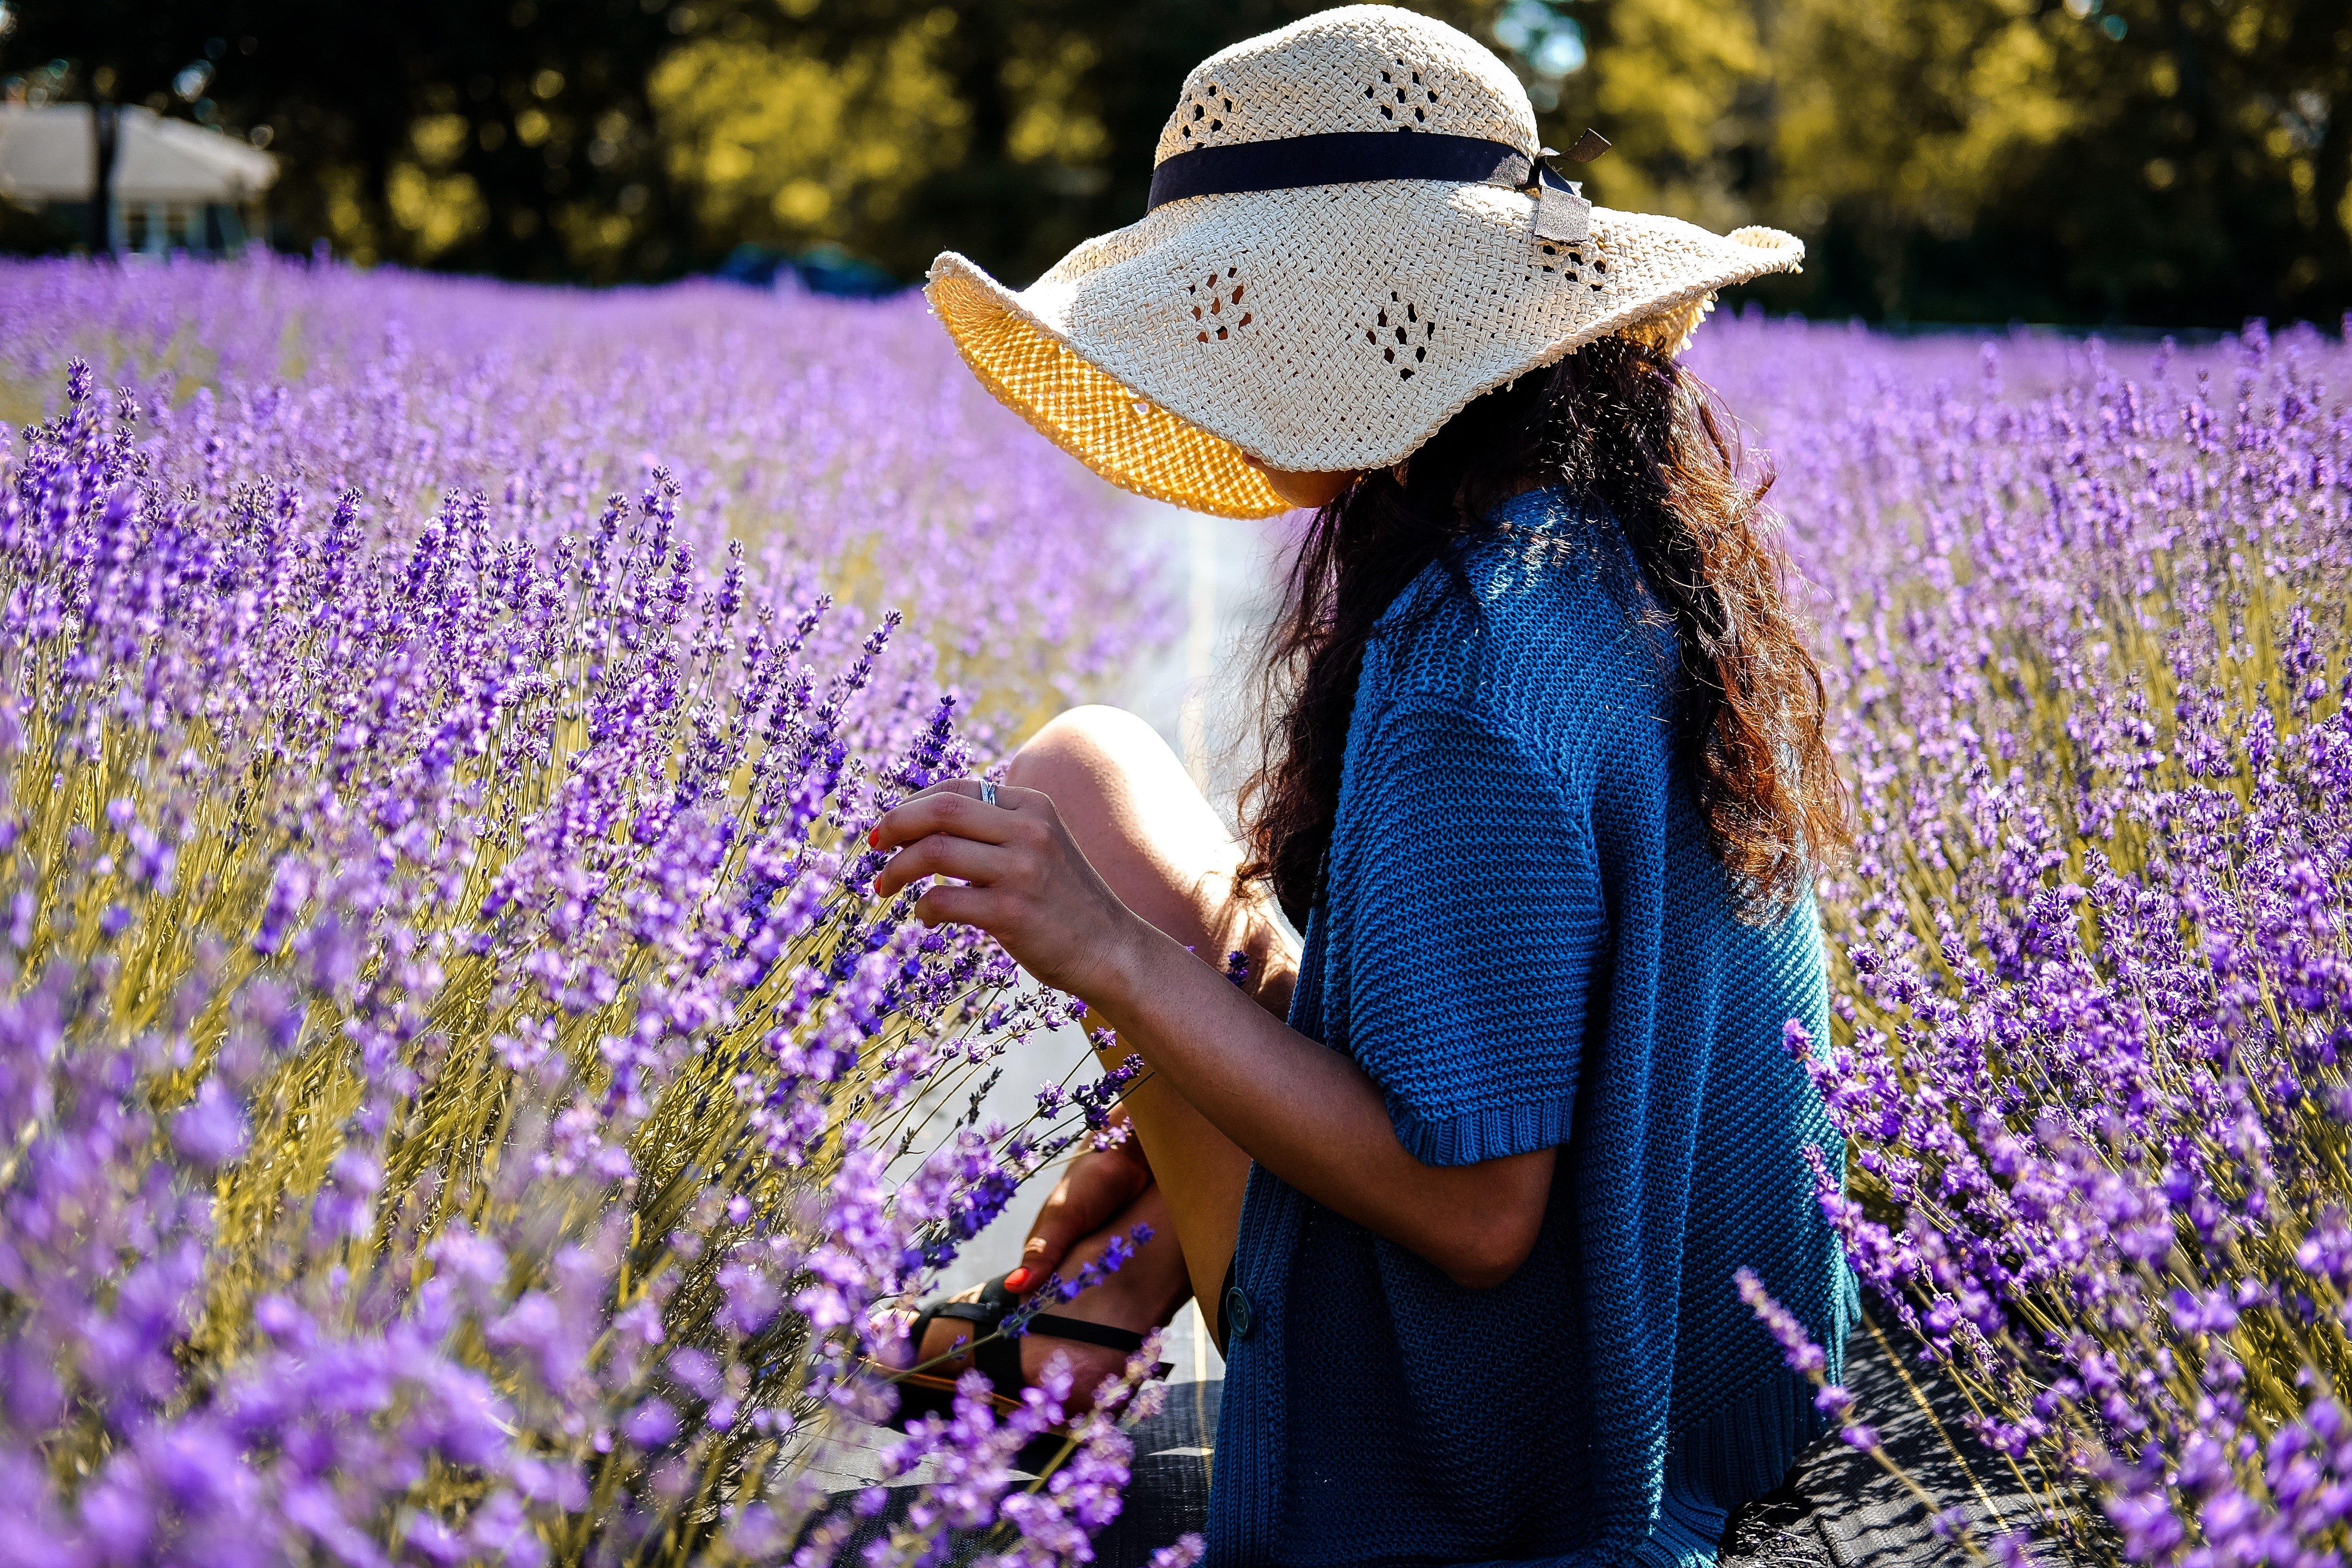 Image of a woman in a hat in a lavender field, courtesy Frank Marino